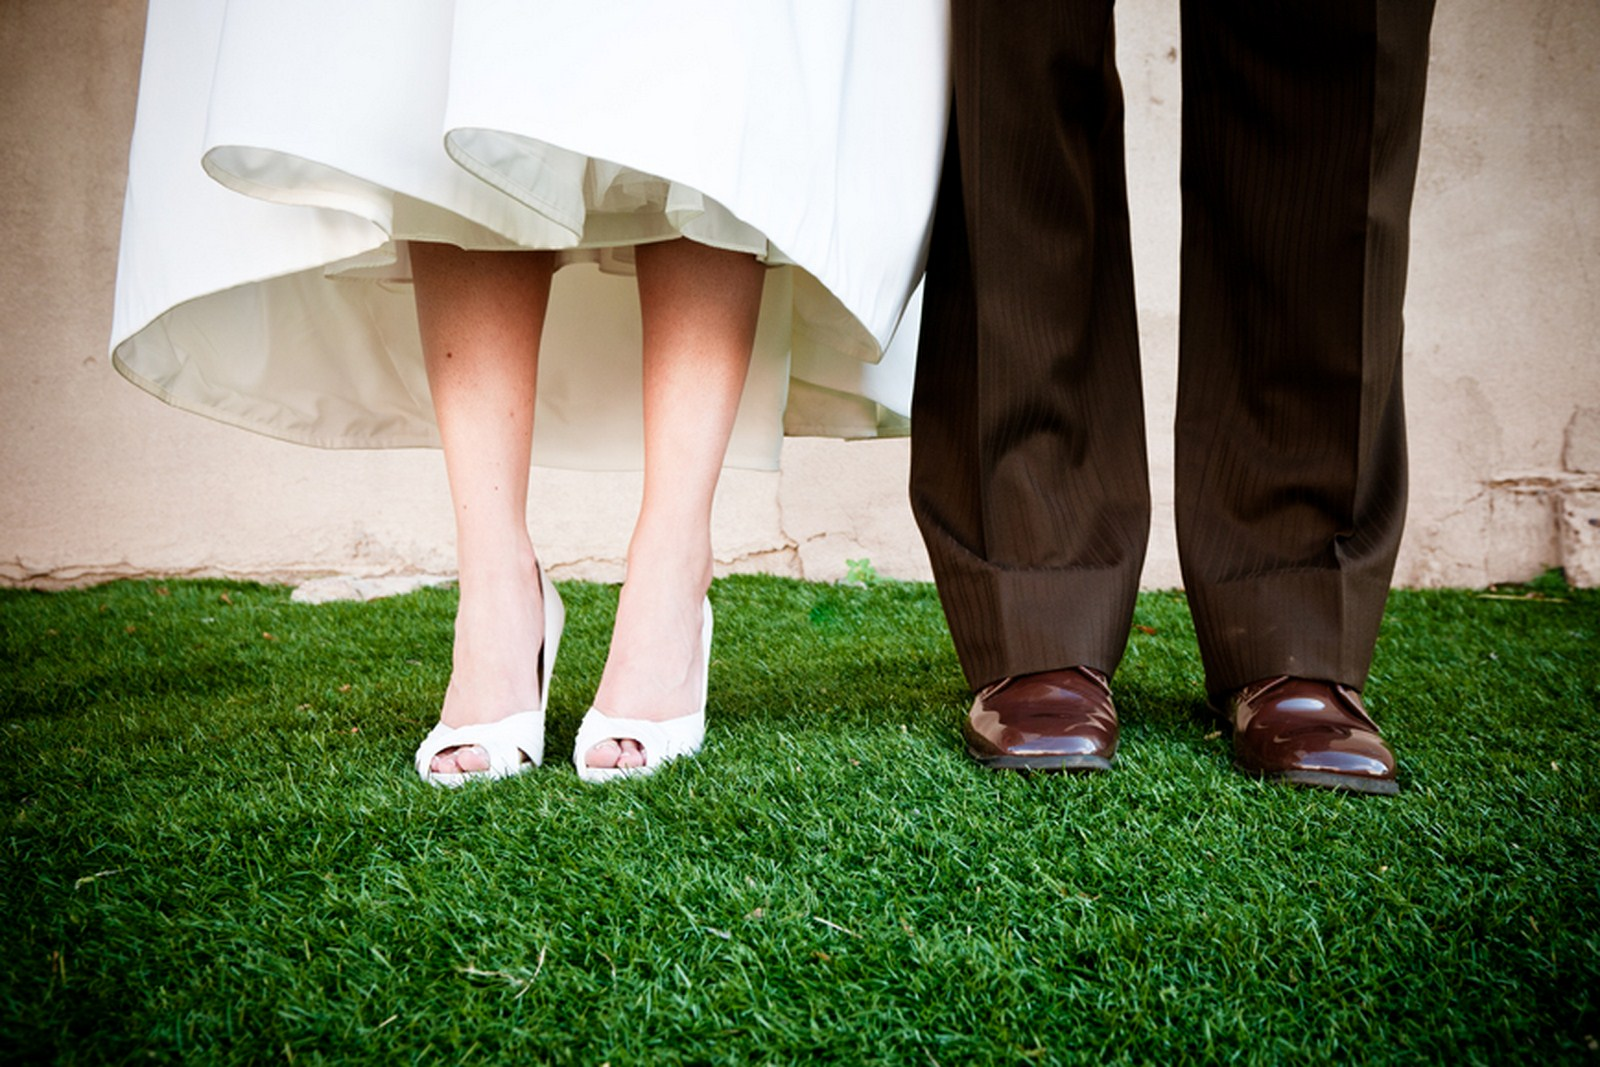 4 bride and groom poses bride and groom shoe picture  Kent Drake photography Life Design Events .jpg